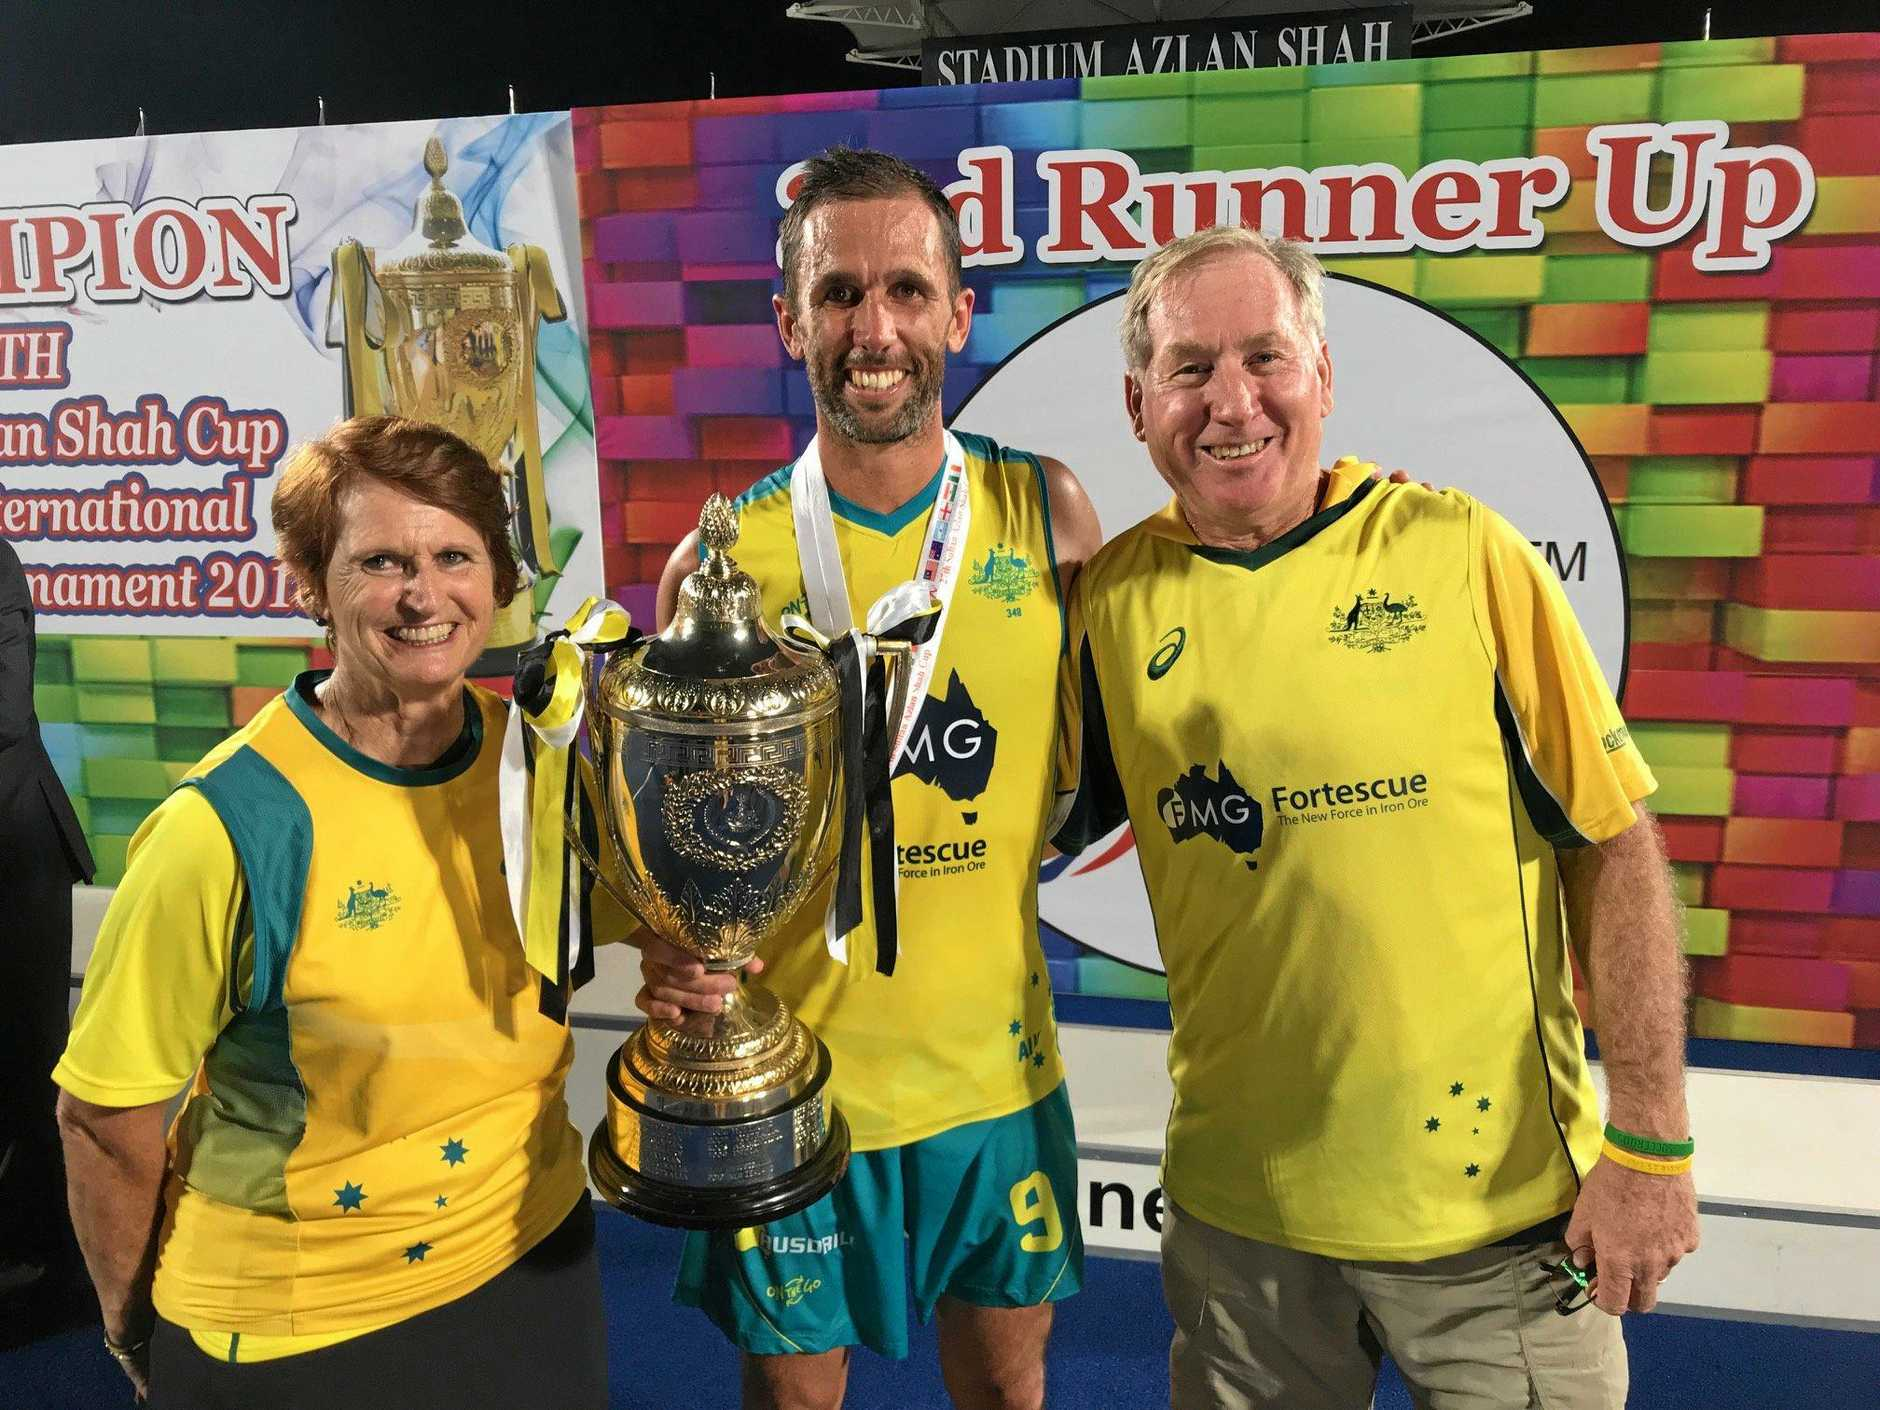 Captain Mark Knowles celebrates the Kookaburras win at the 2017 Azlan Shah Cup with parents Barb and Ryan Knowles.